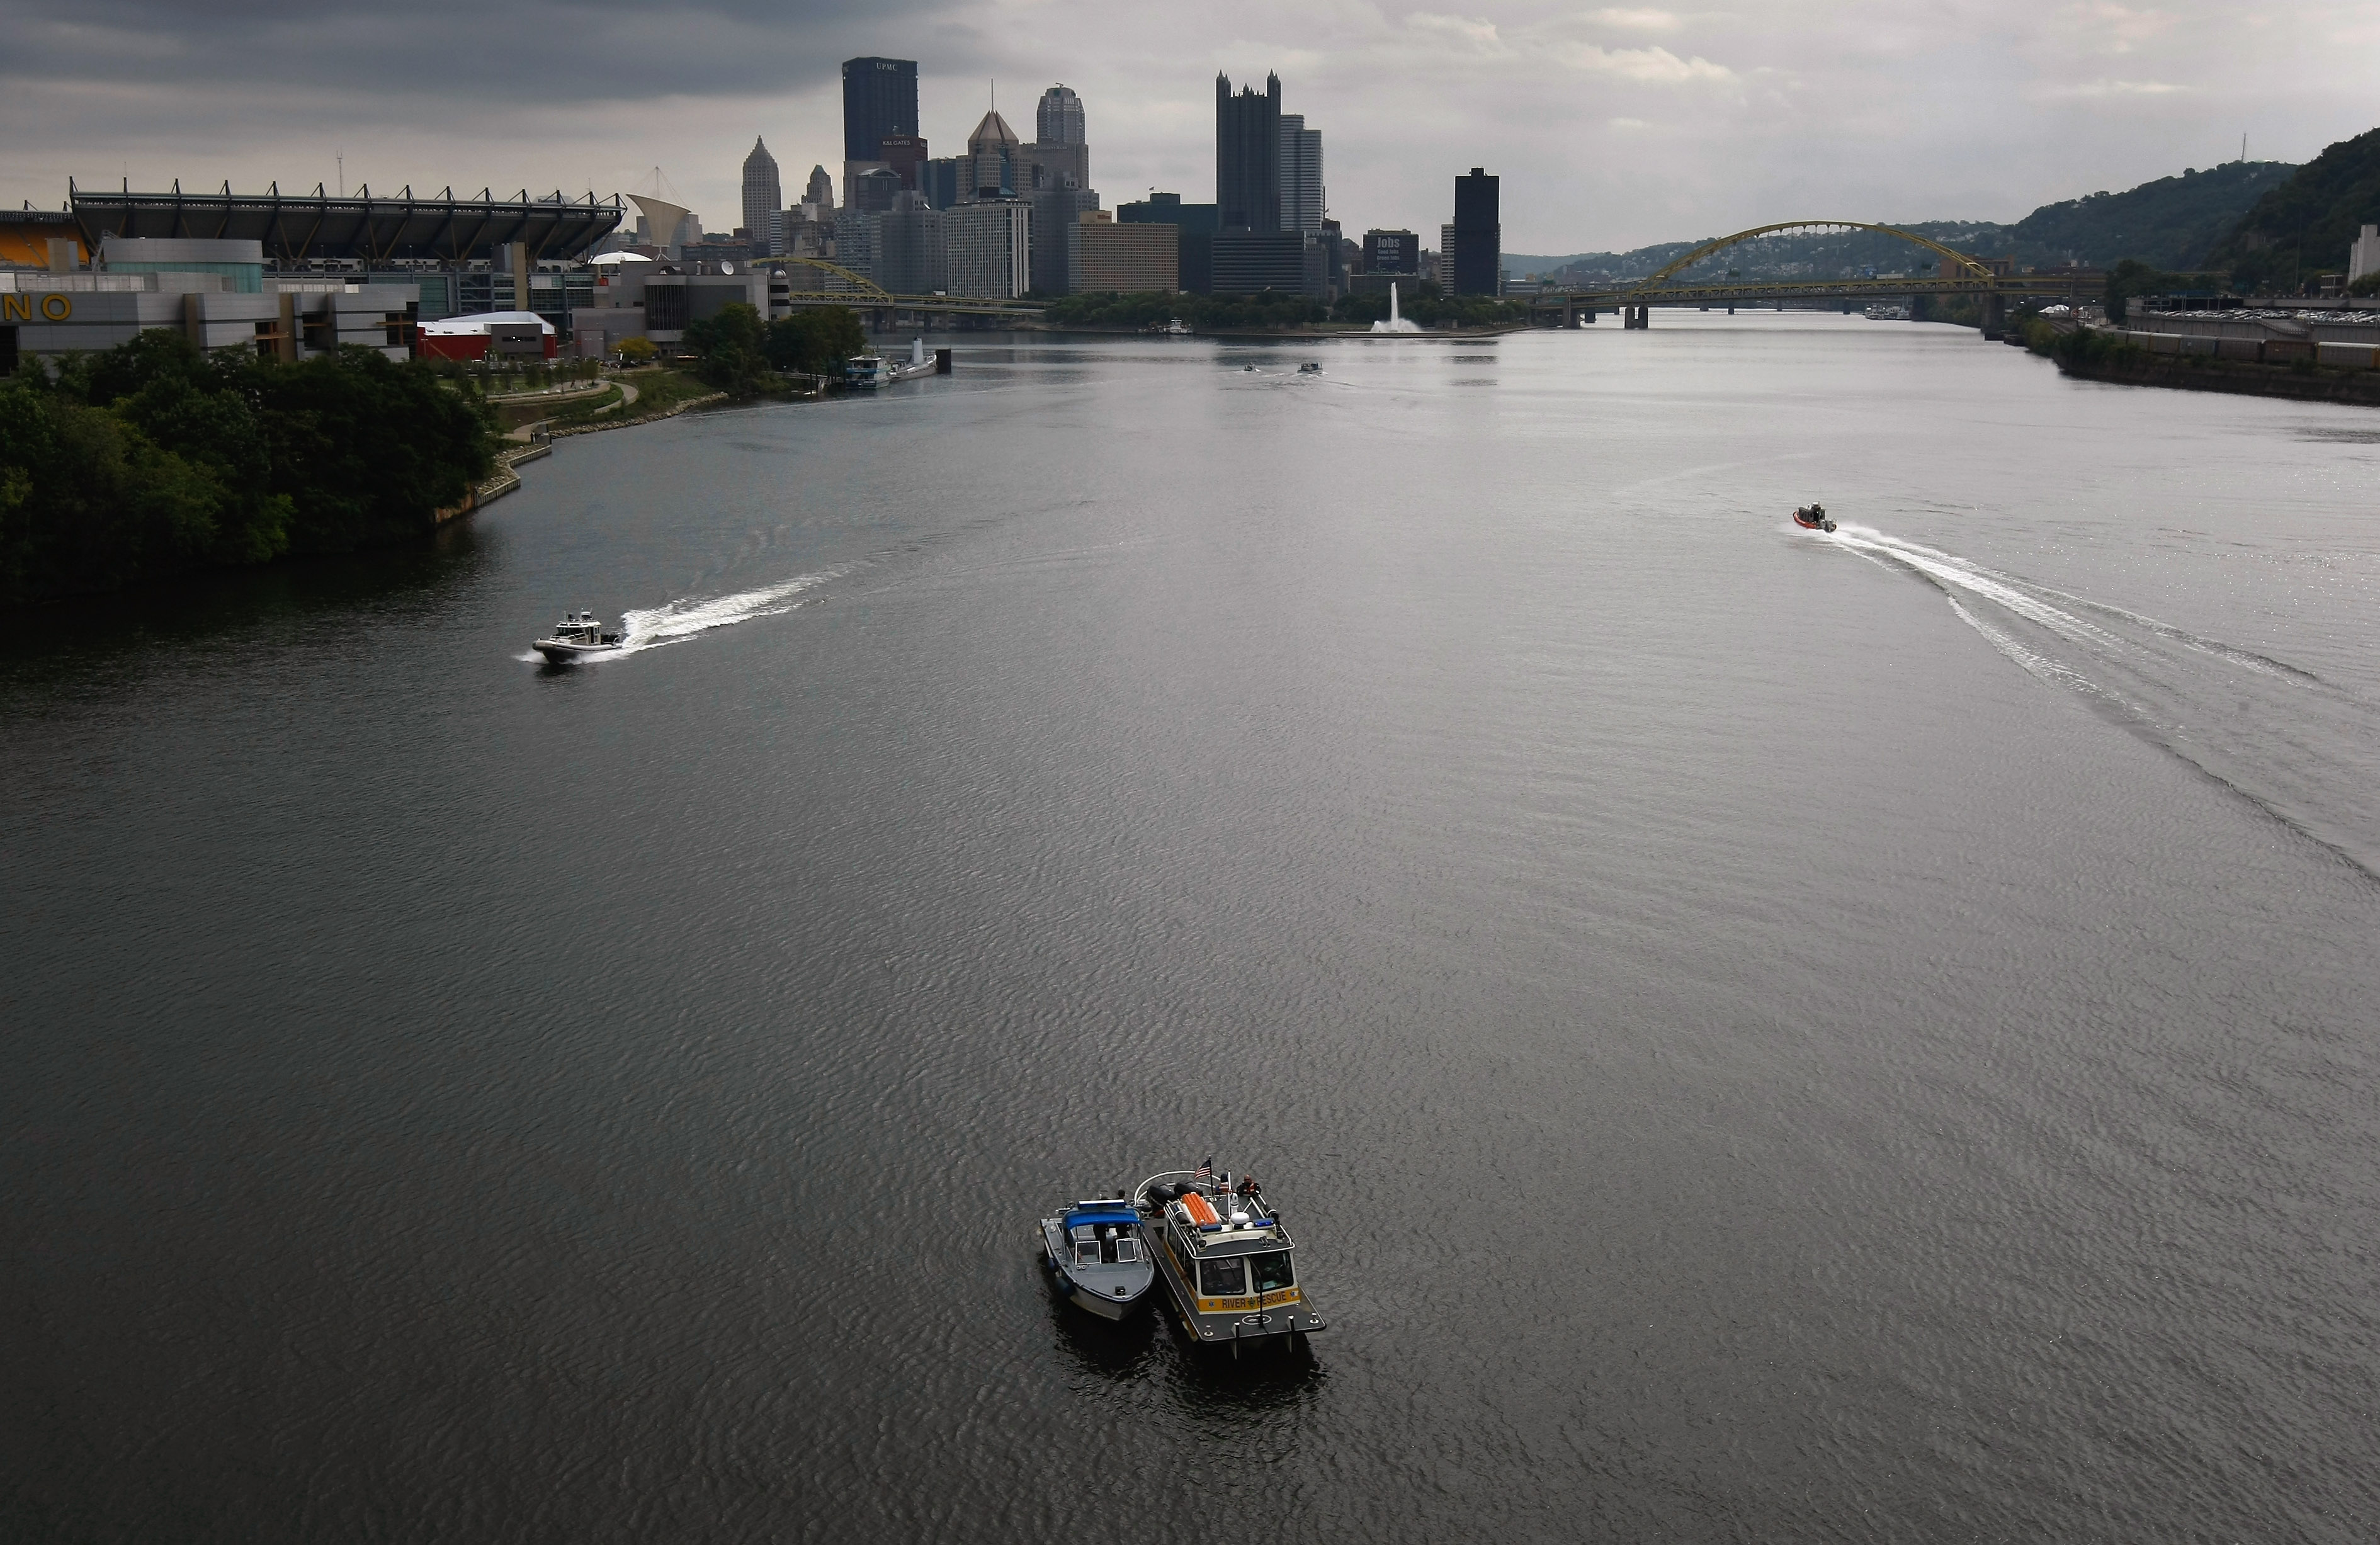 PITTSBURGH - SEPTEMBER 23: Law enforcement boats patrol the Ohio River ahead of the G-20 summit on September 23, 2009 in Pittsburgh, Pennsylvania. Dakota James' body was found in this river March 6, 2017. (Photo by John Moore/Getty Images)